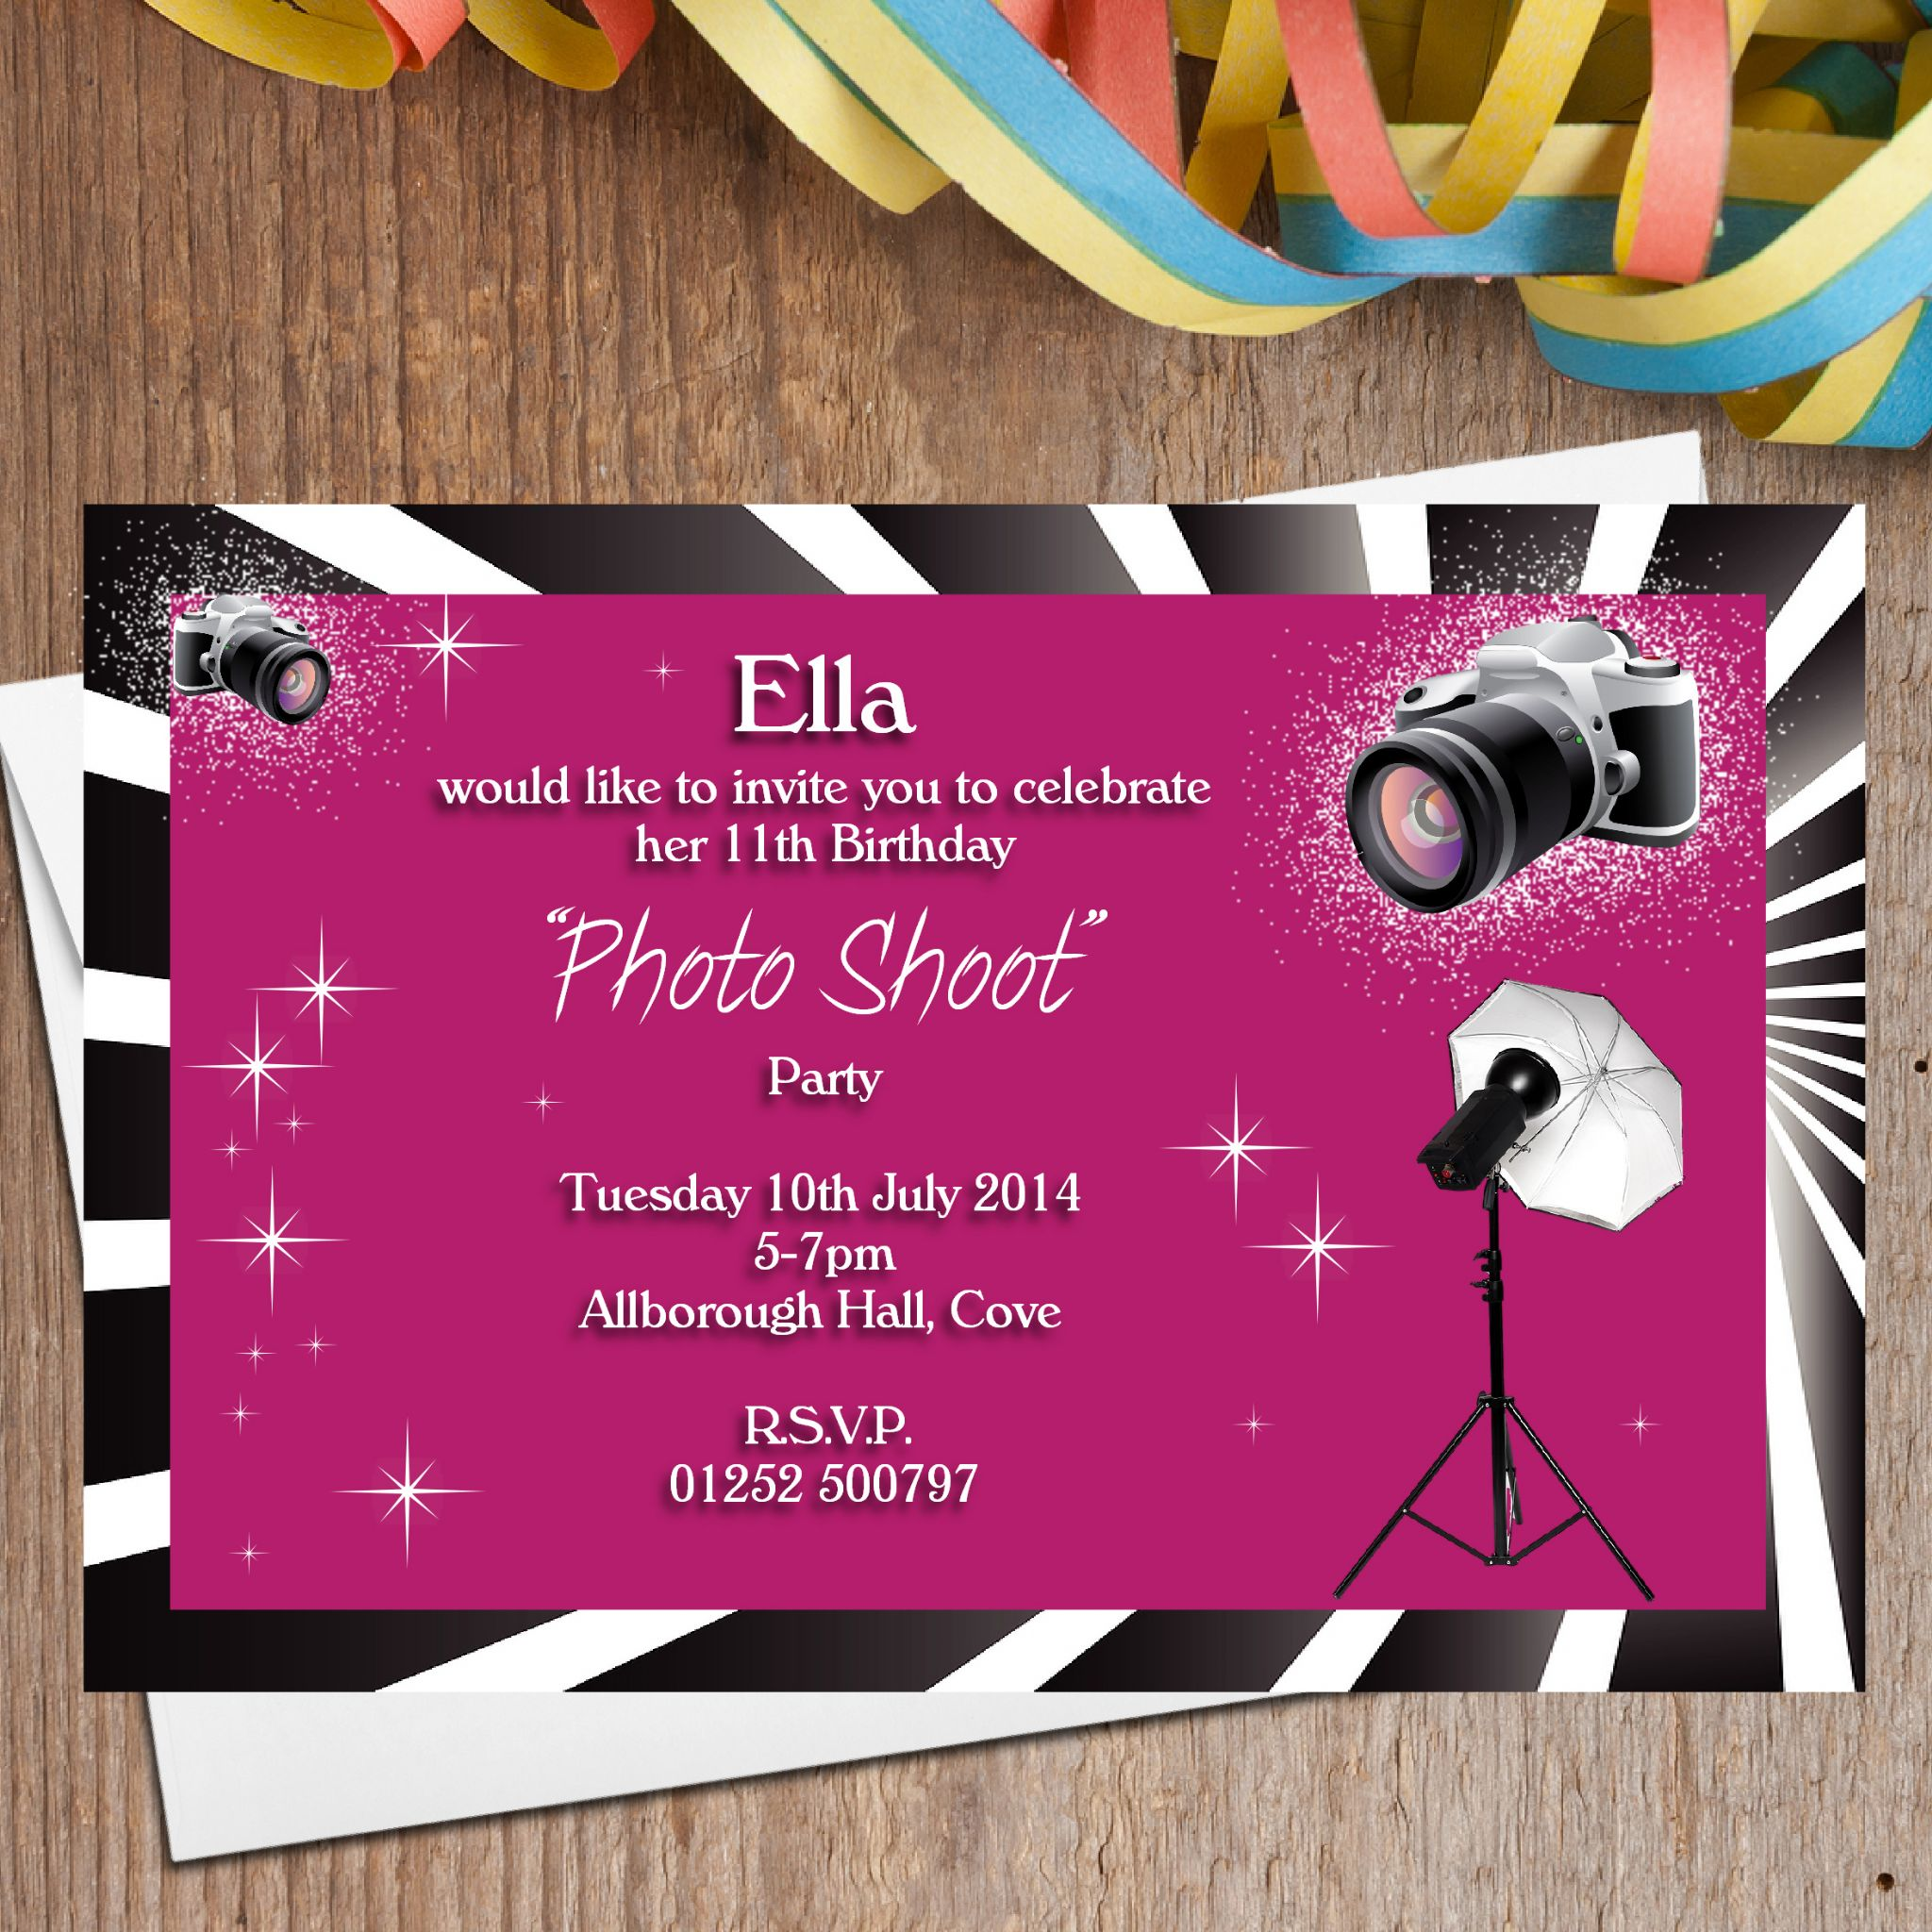 10 Personalised Photo Shoot Birthday Party Invitations N109